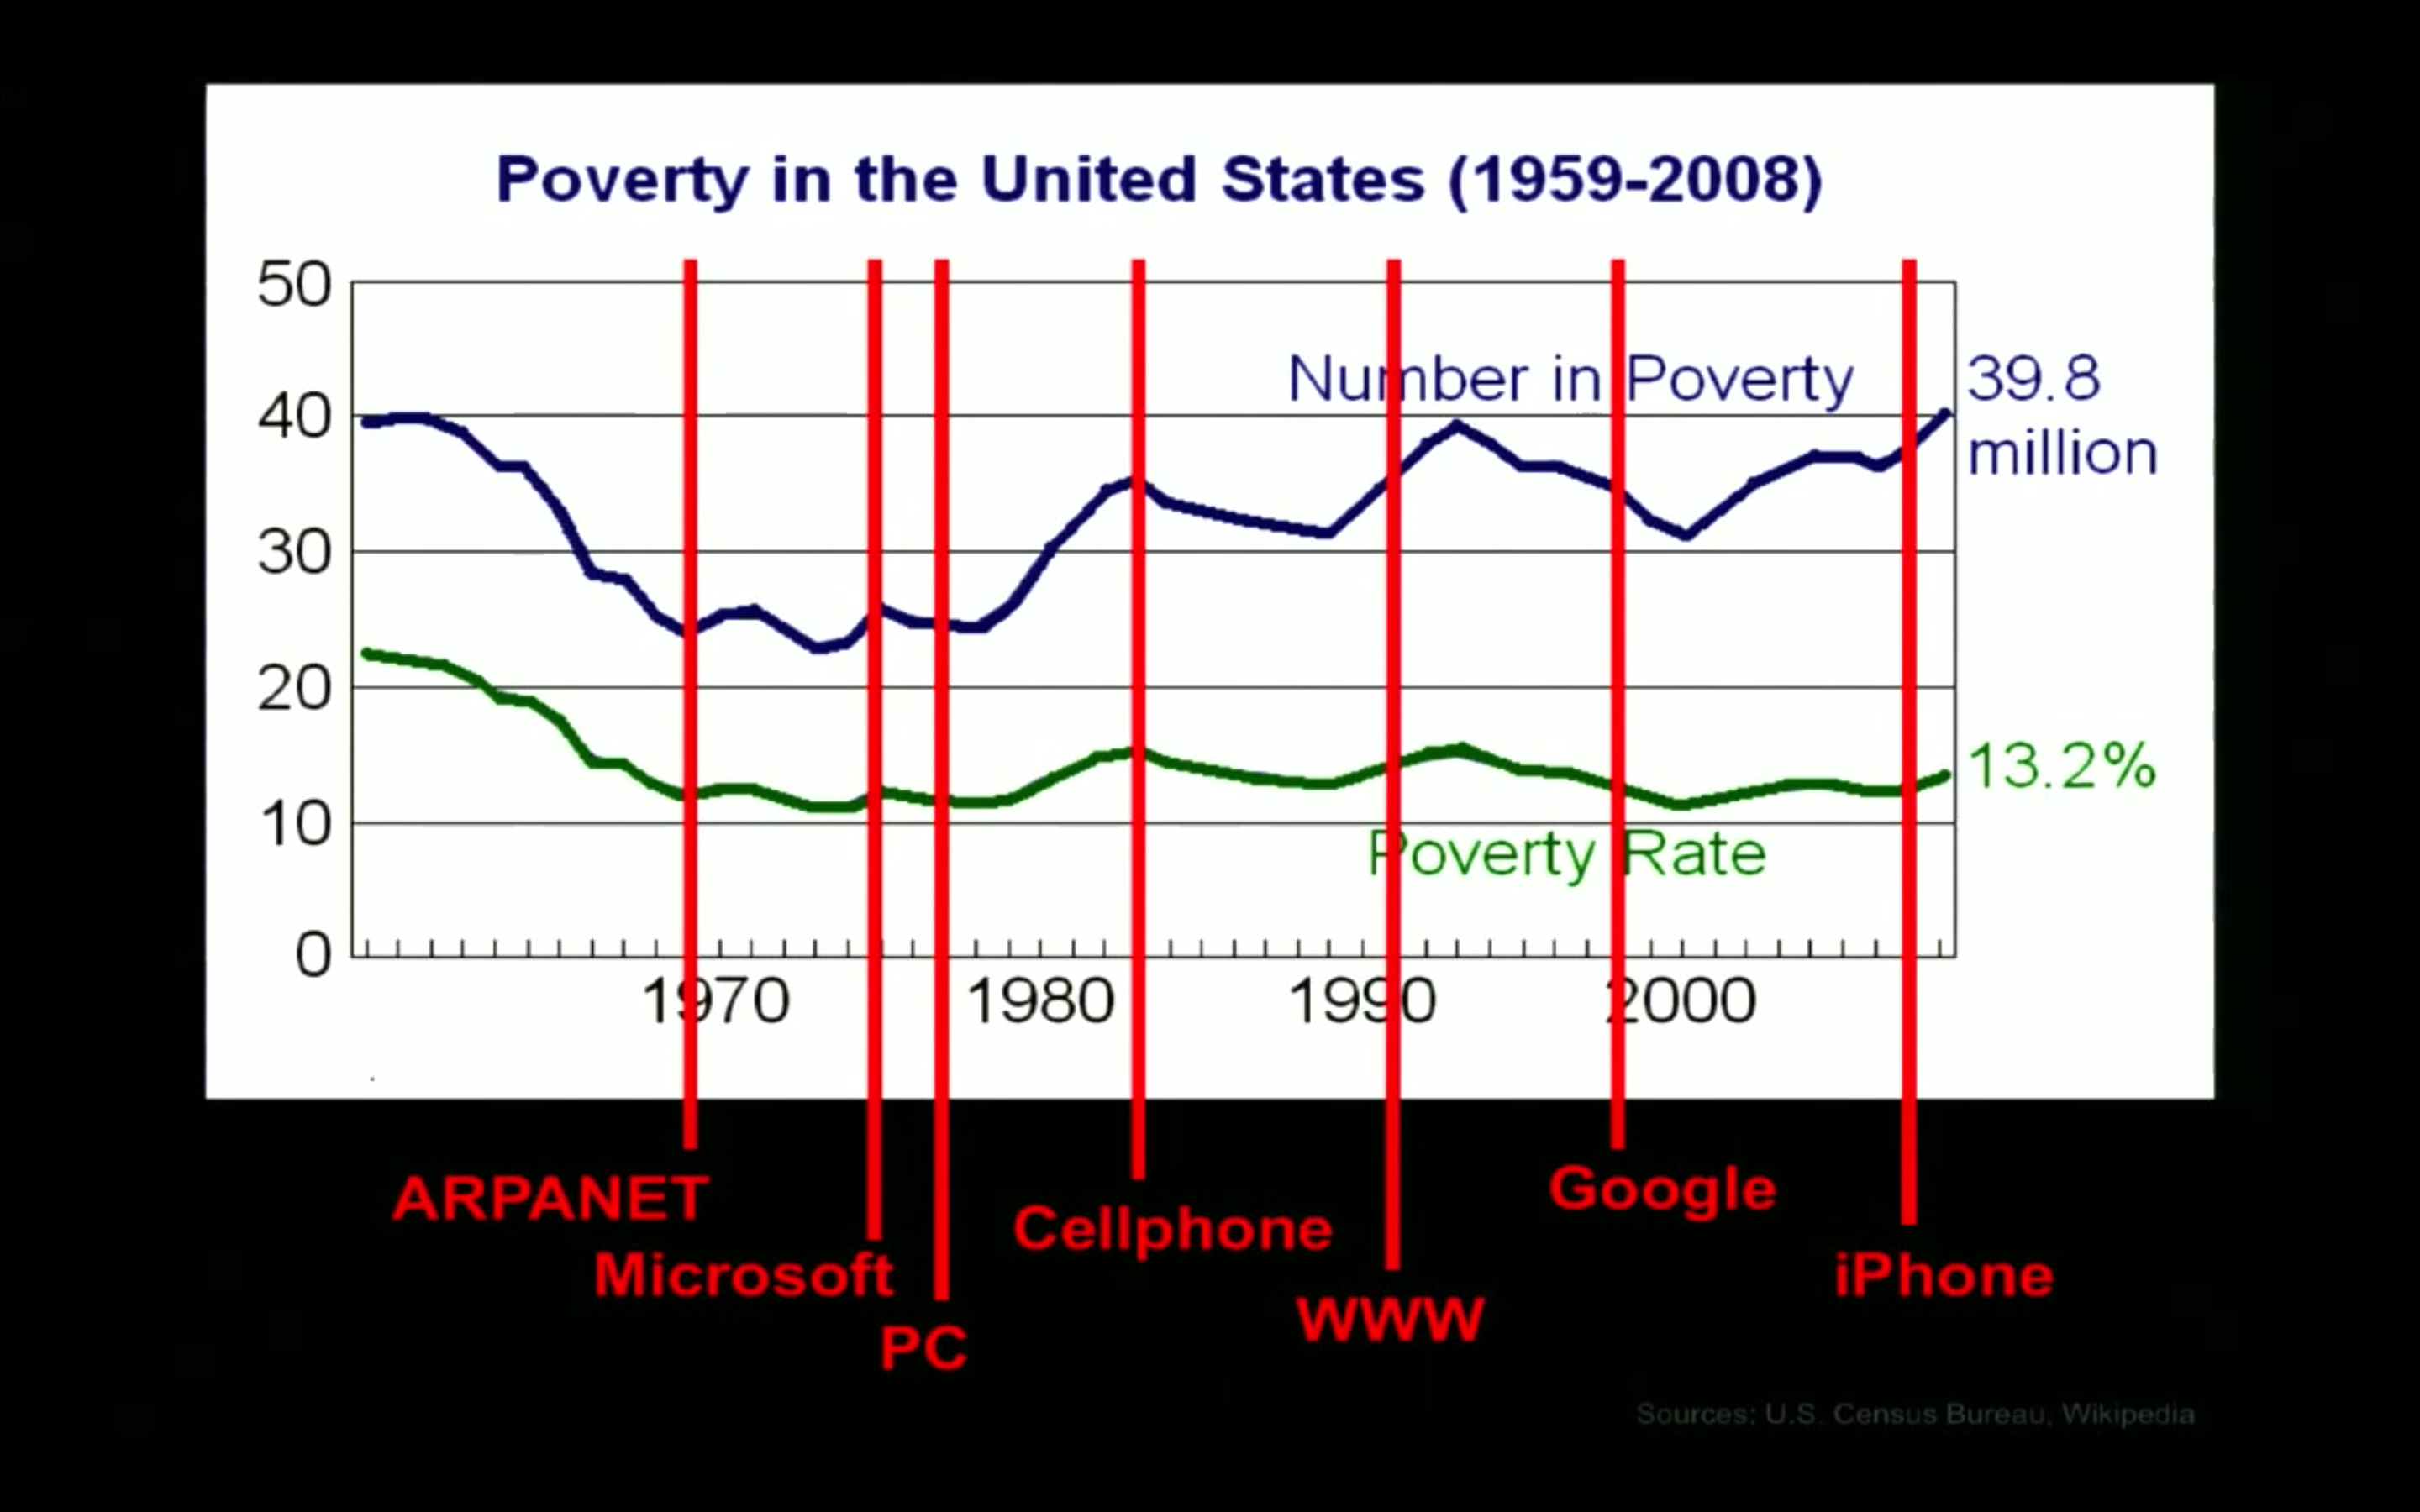 US Poverty Data